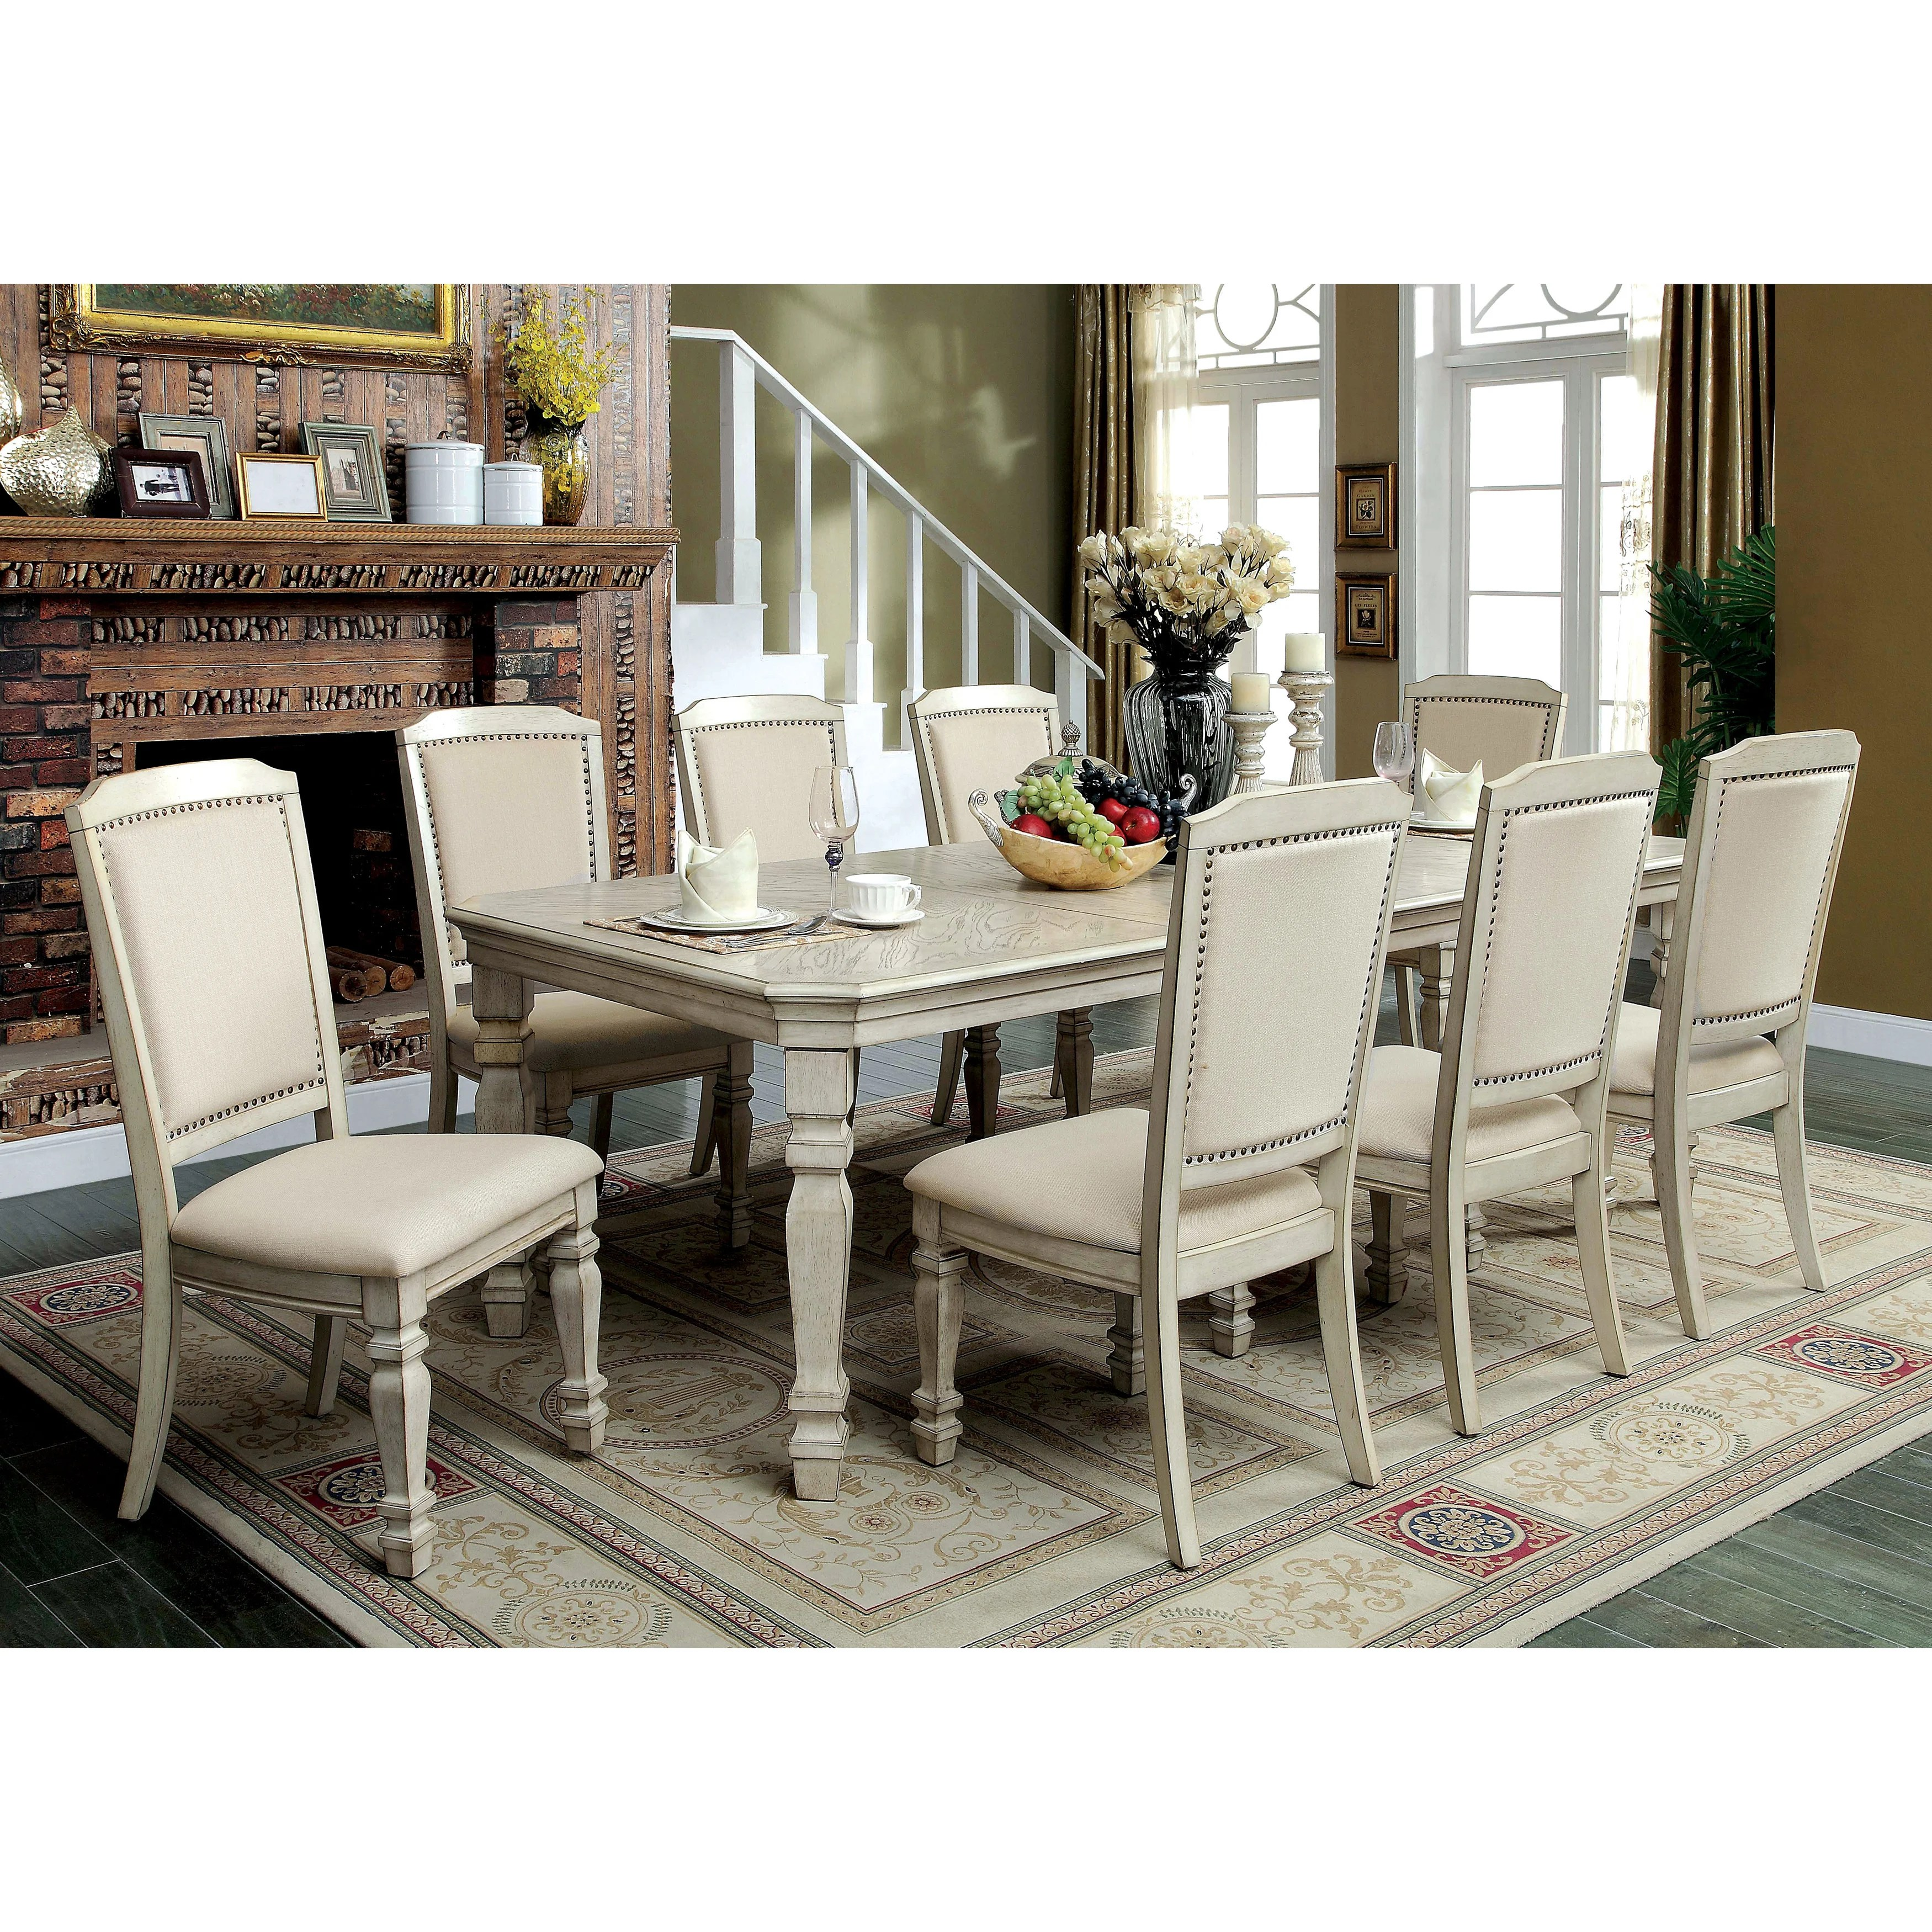 White Dining Room Chair Caplin Traditional 9 Piece Antique White Dining Set By Foa